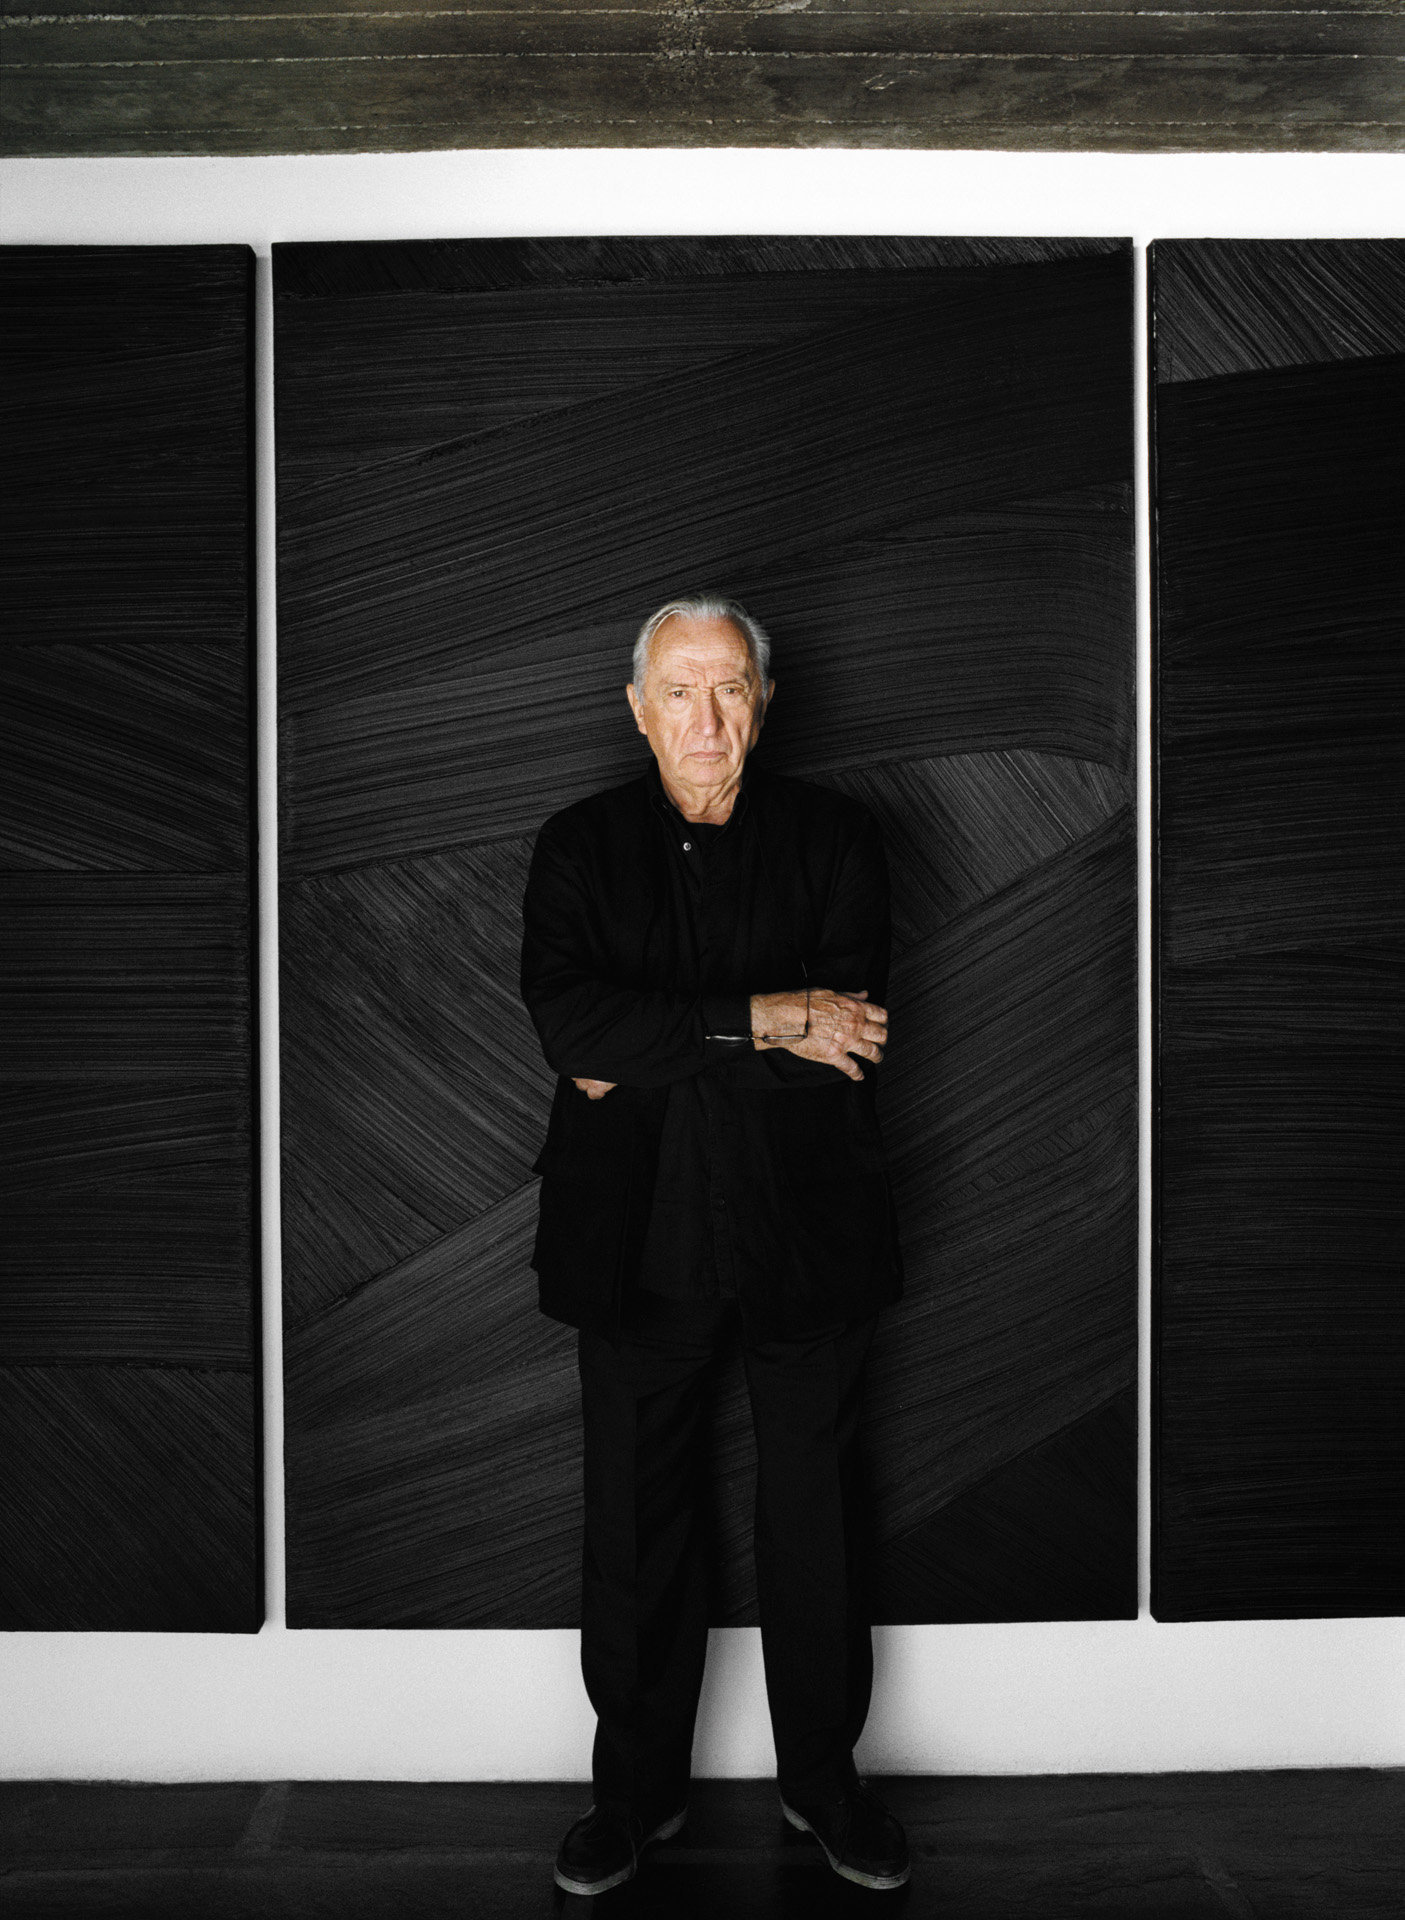 PIERRE SOULAGES-SETE-FRANCE 2003